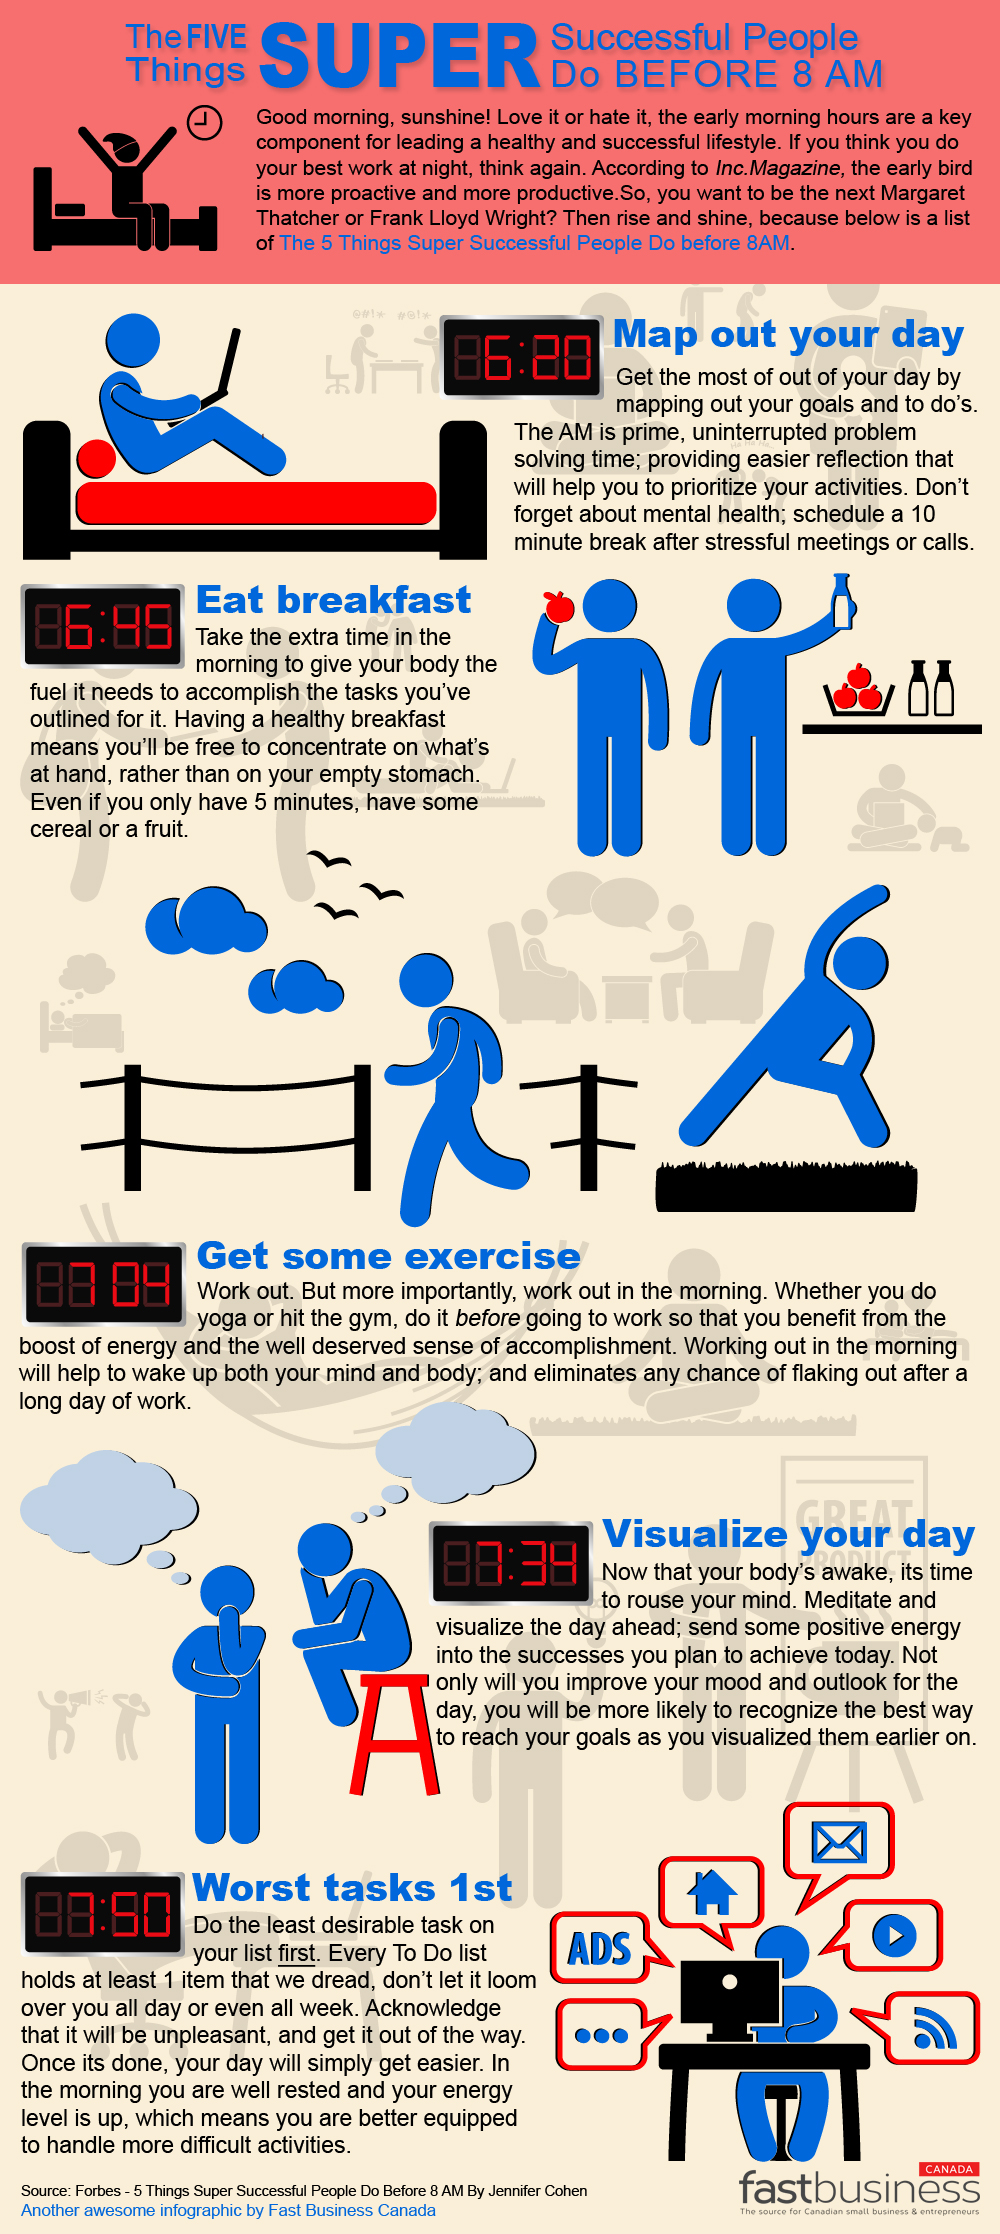 five-things-super-successful-people-do-before-8am_526829c4585f6